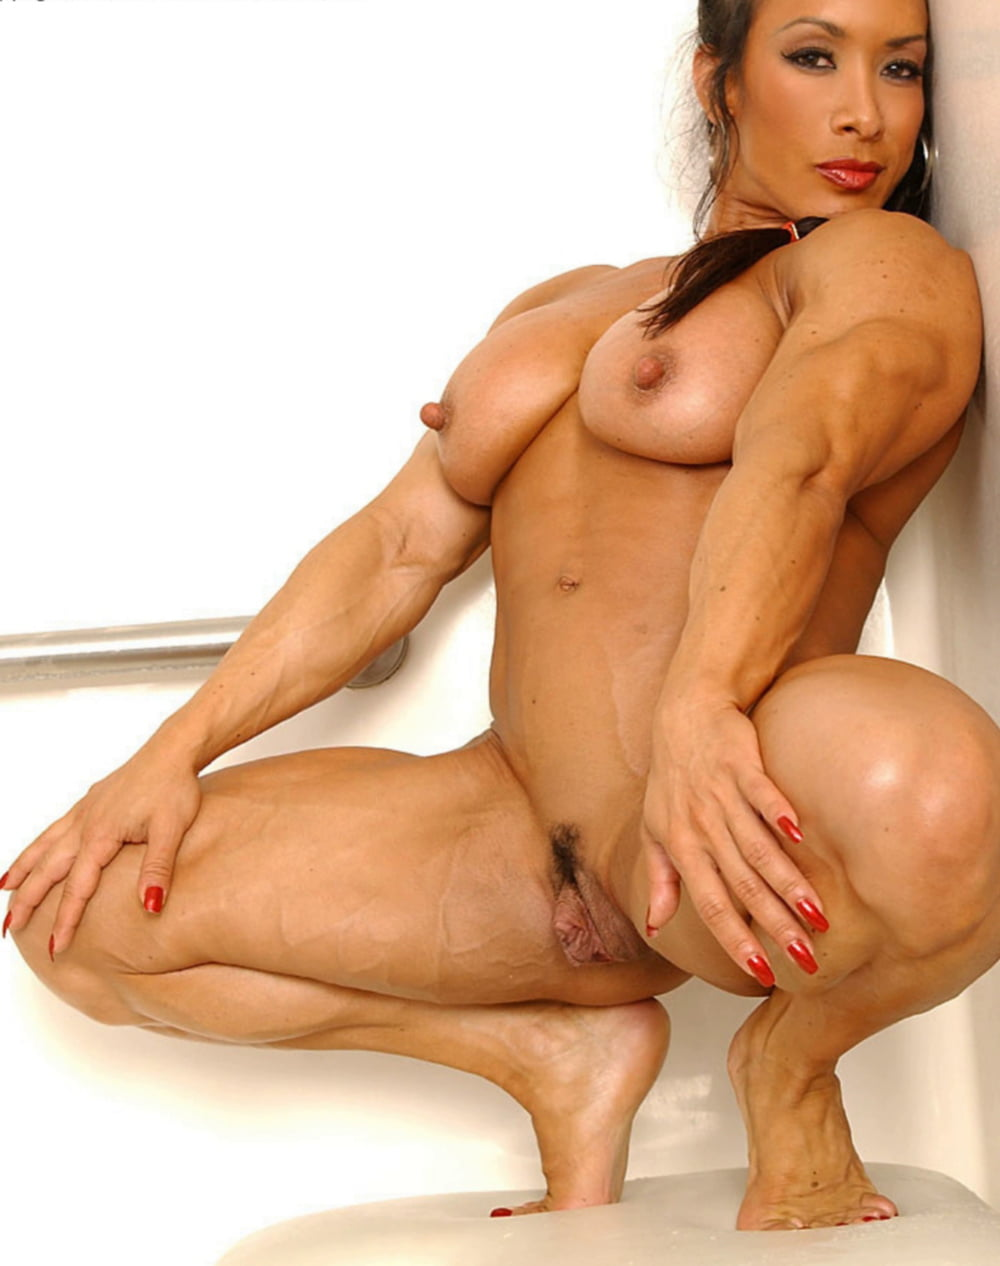 davina-muscle-pussy-nude-pic-of-beautiful-pinay